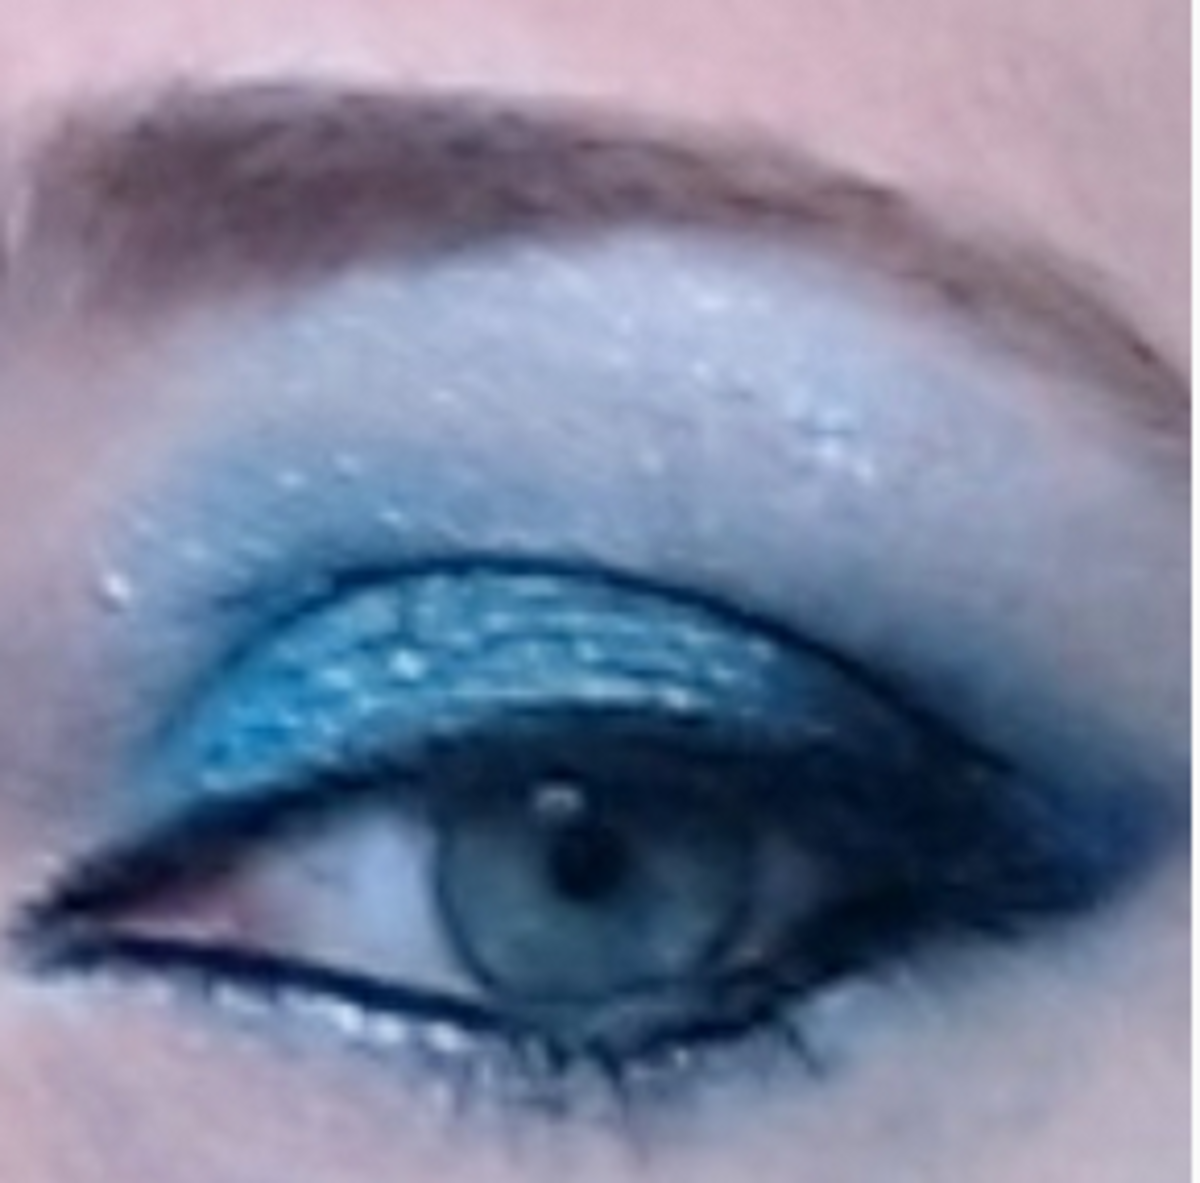 Maybelline's Tenacious Teal with Too Cool brow bone and under-eye  highlights